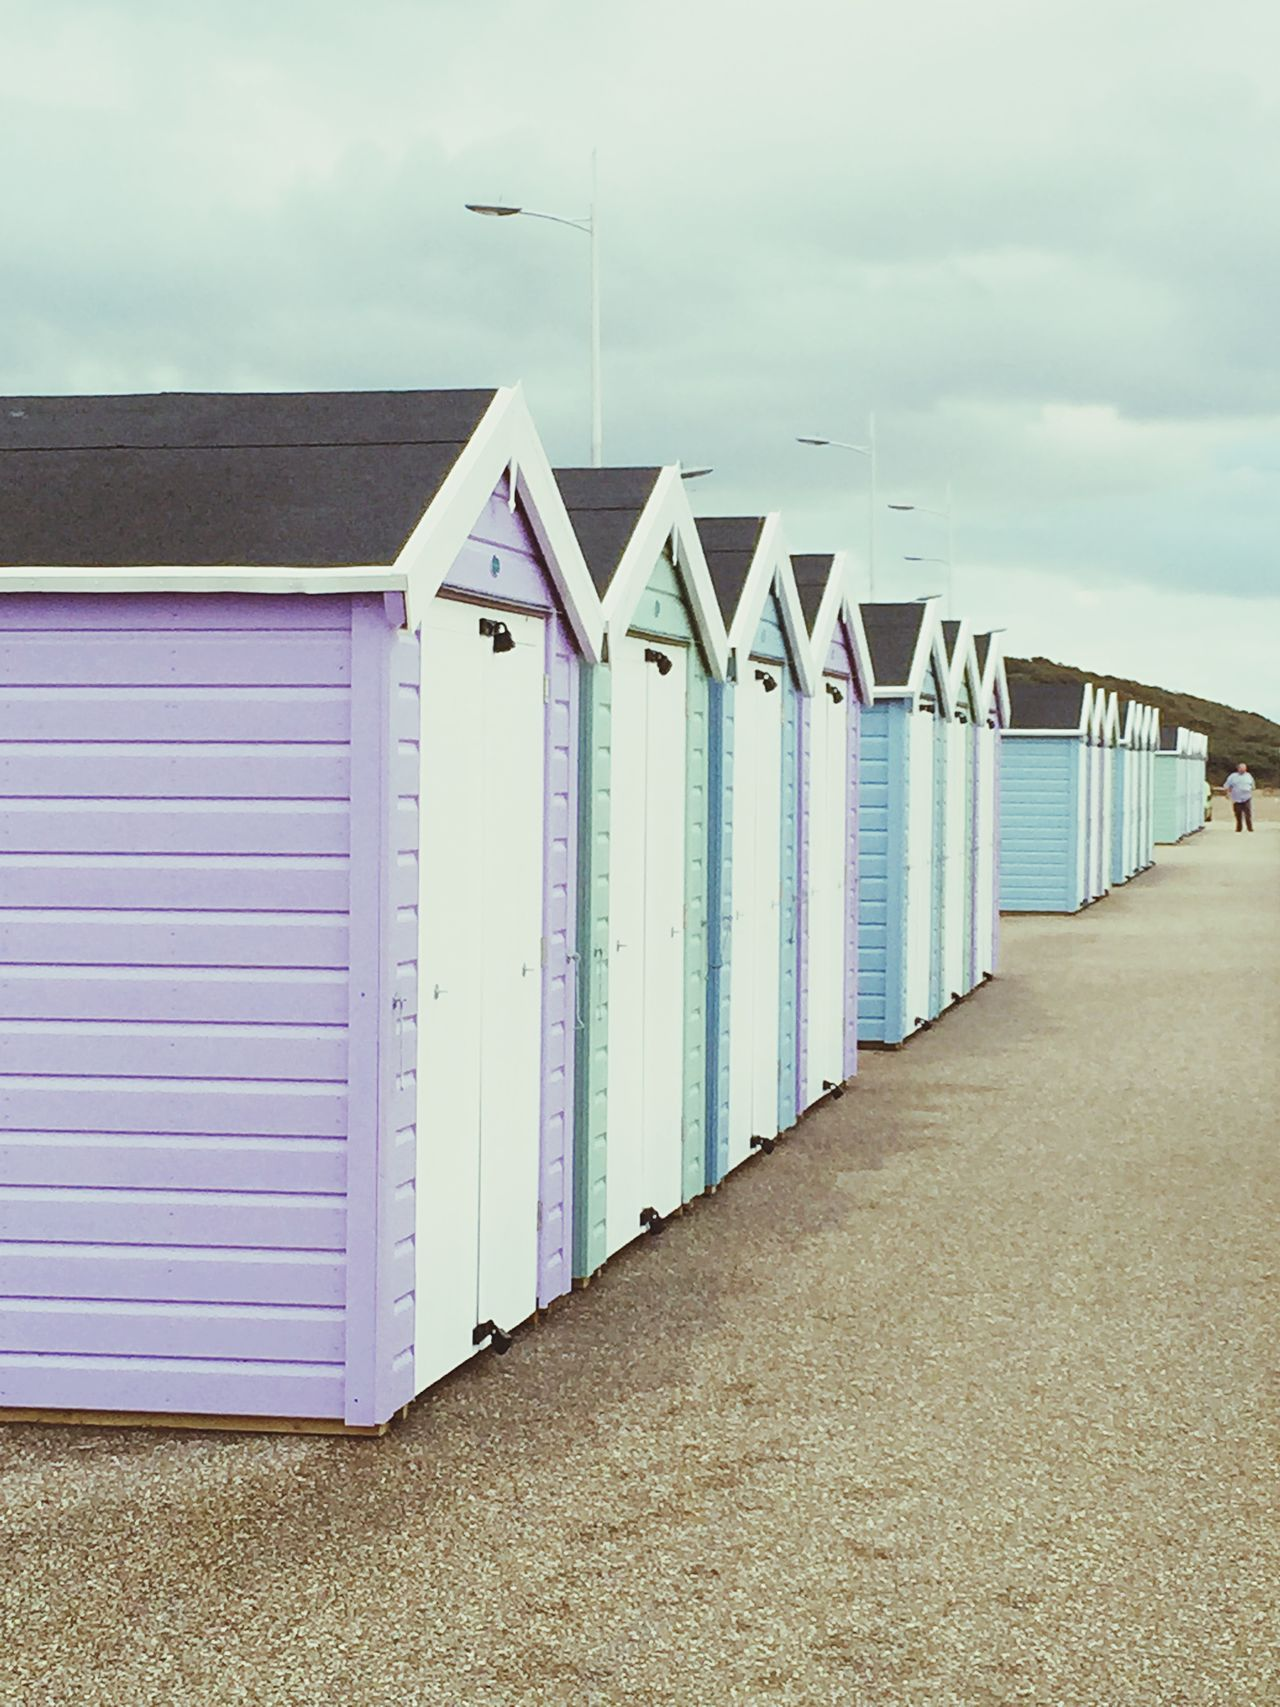 Beachhuts Beach Photography Seaside Fresh Open Air Pastel Huts Wood House Escaping Sea View